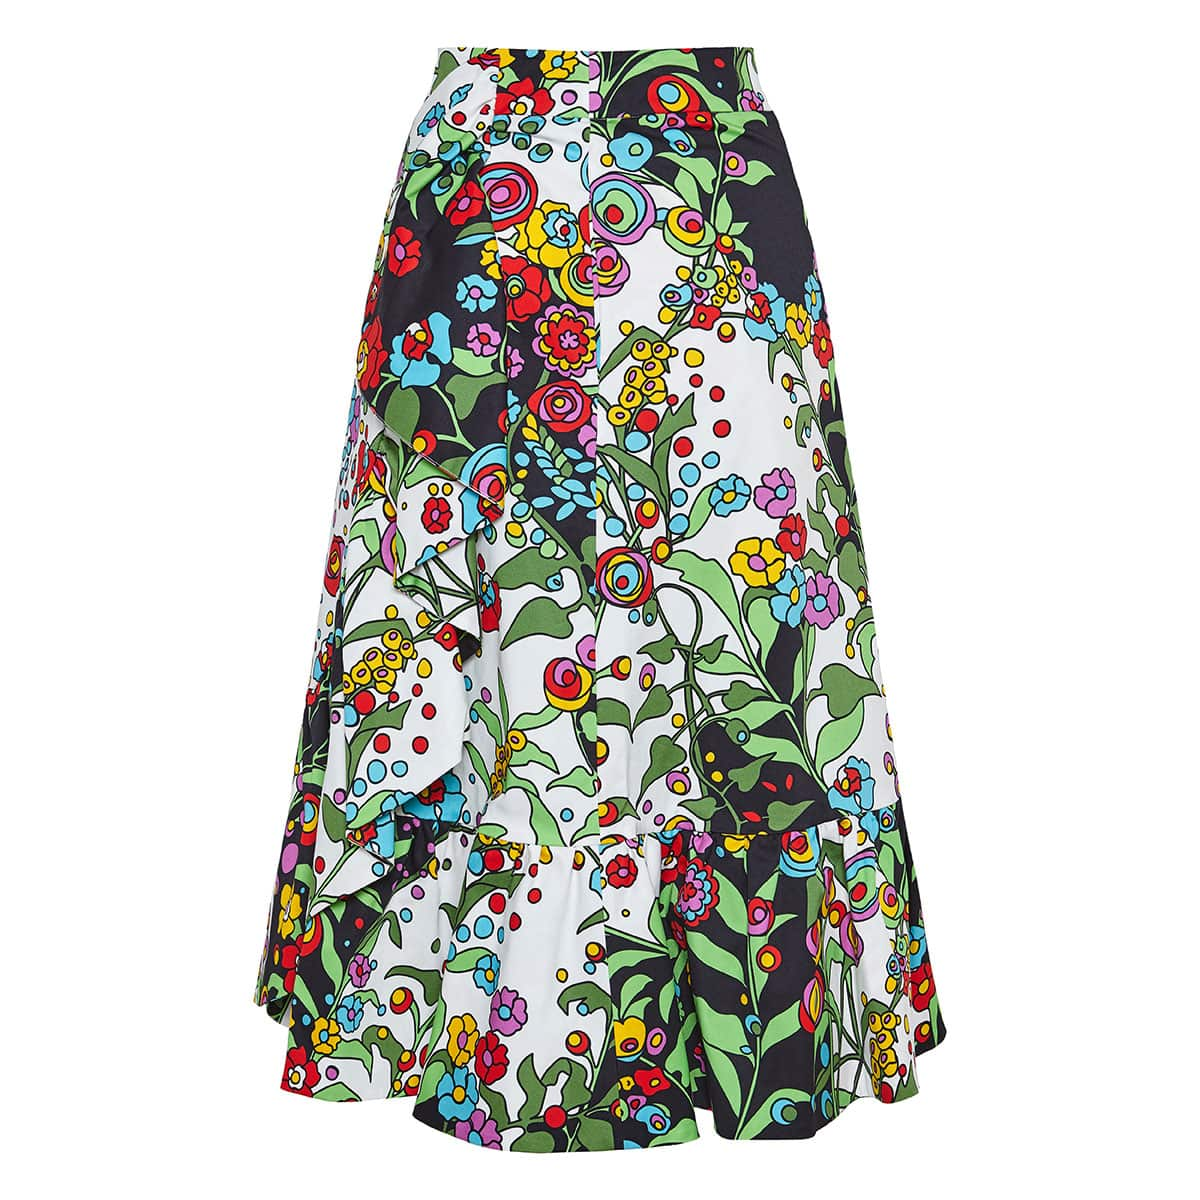 Jazzy floral ruffled midi skirt